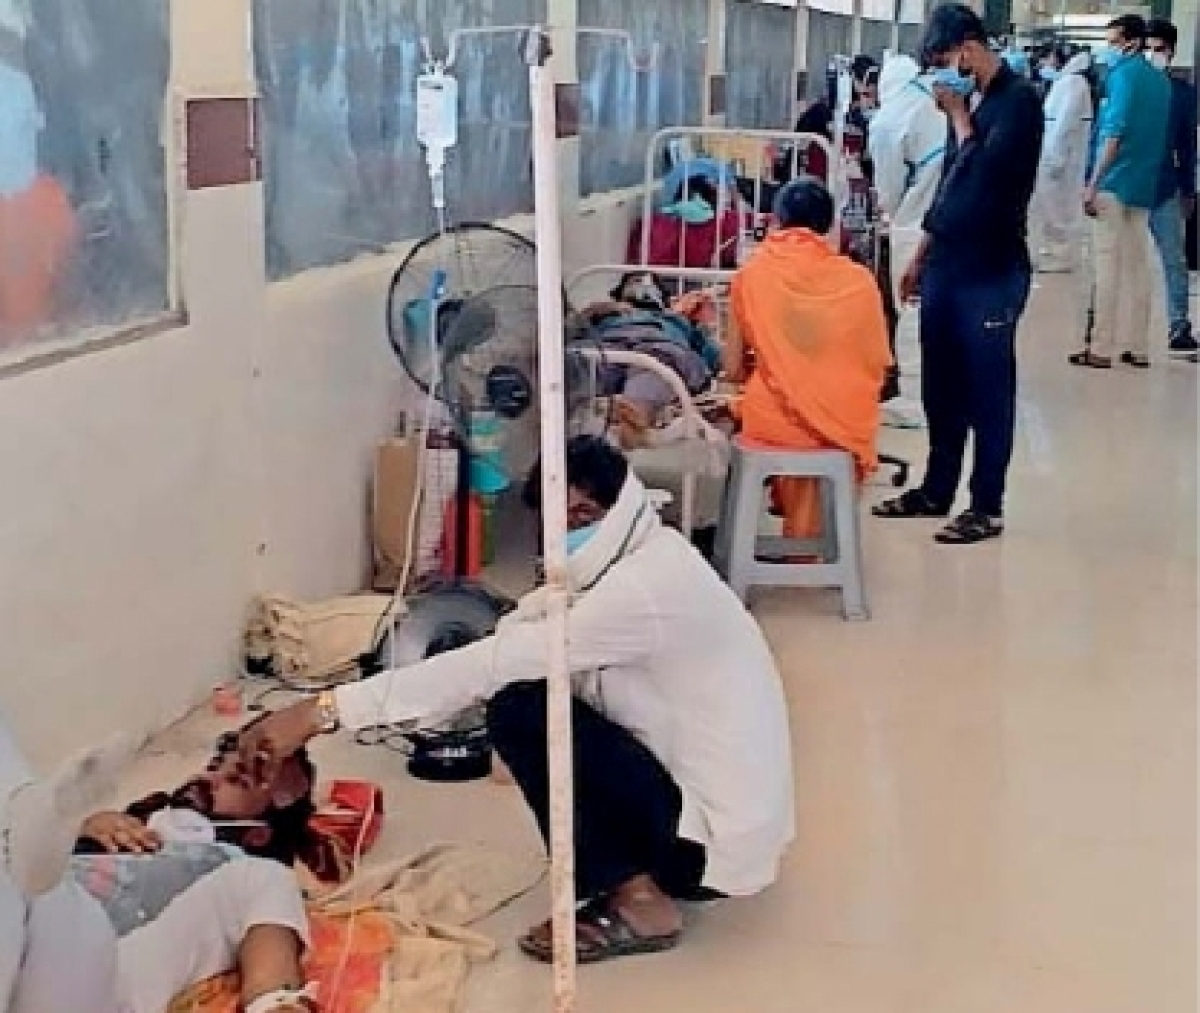 Madhya Pradesh: Corona patients treated under hospital porch in Jaora due to lack of facilities, space